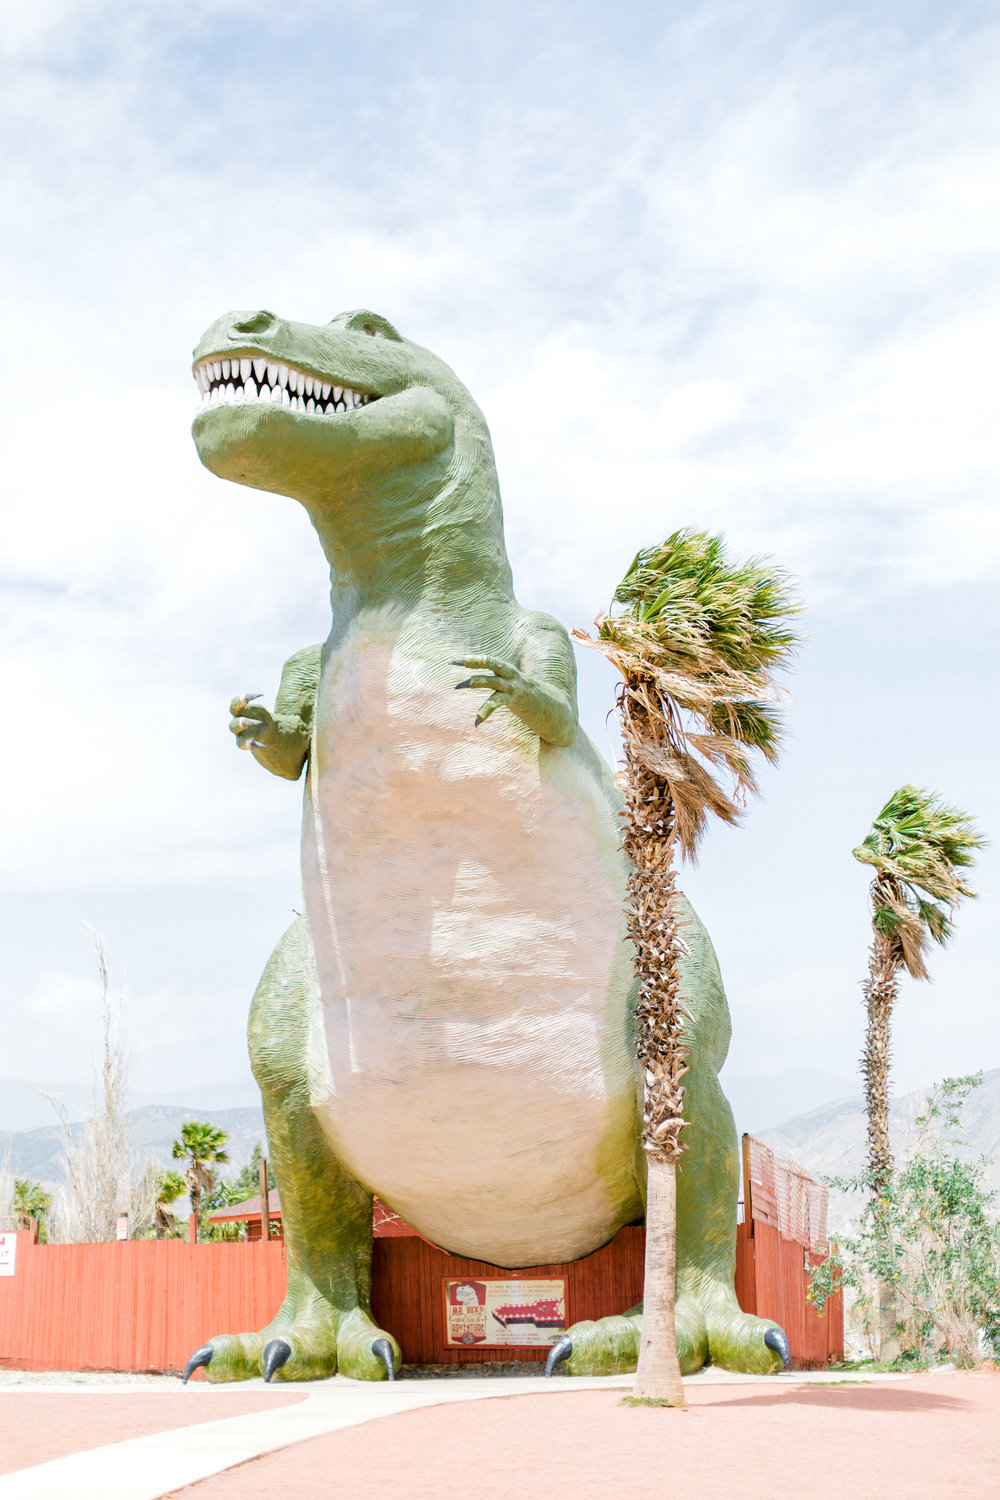 Jessica Sgubin Photography Atlanta Portrait photographer los angeles la salvation mountain greenhouse cactus garden moorten botanical garden cabazon dinosaurs santa monica joshua tree-21.jpg